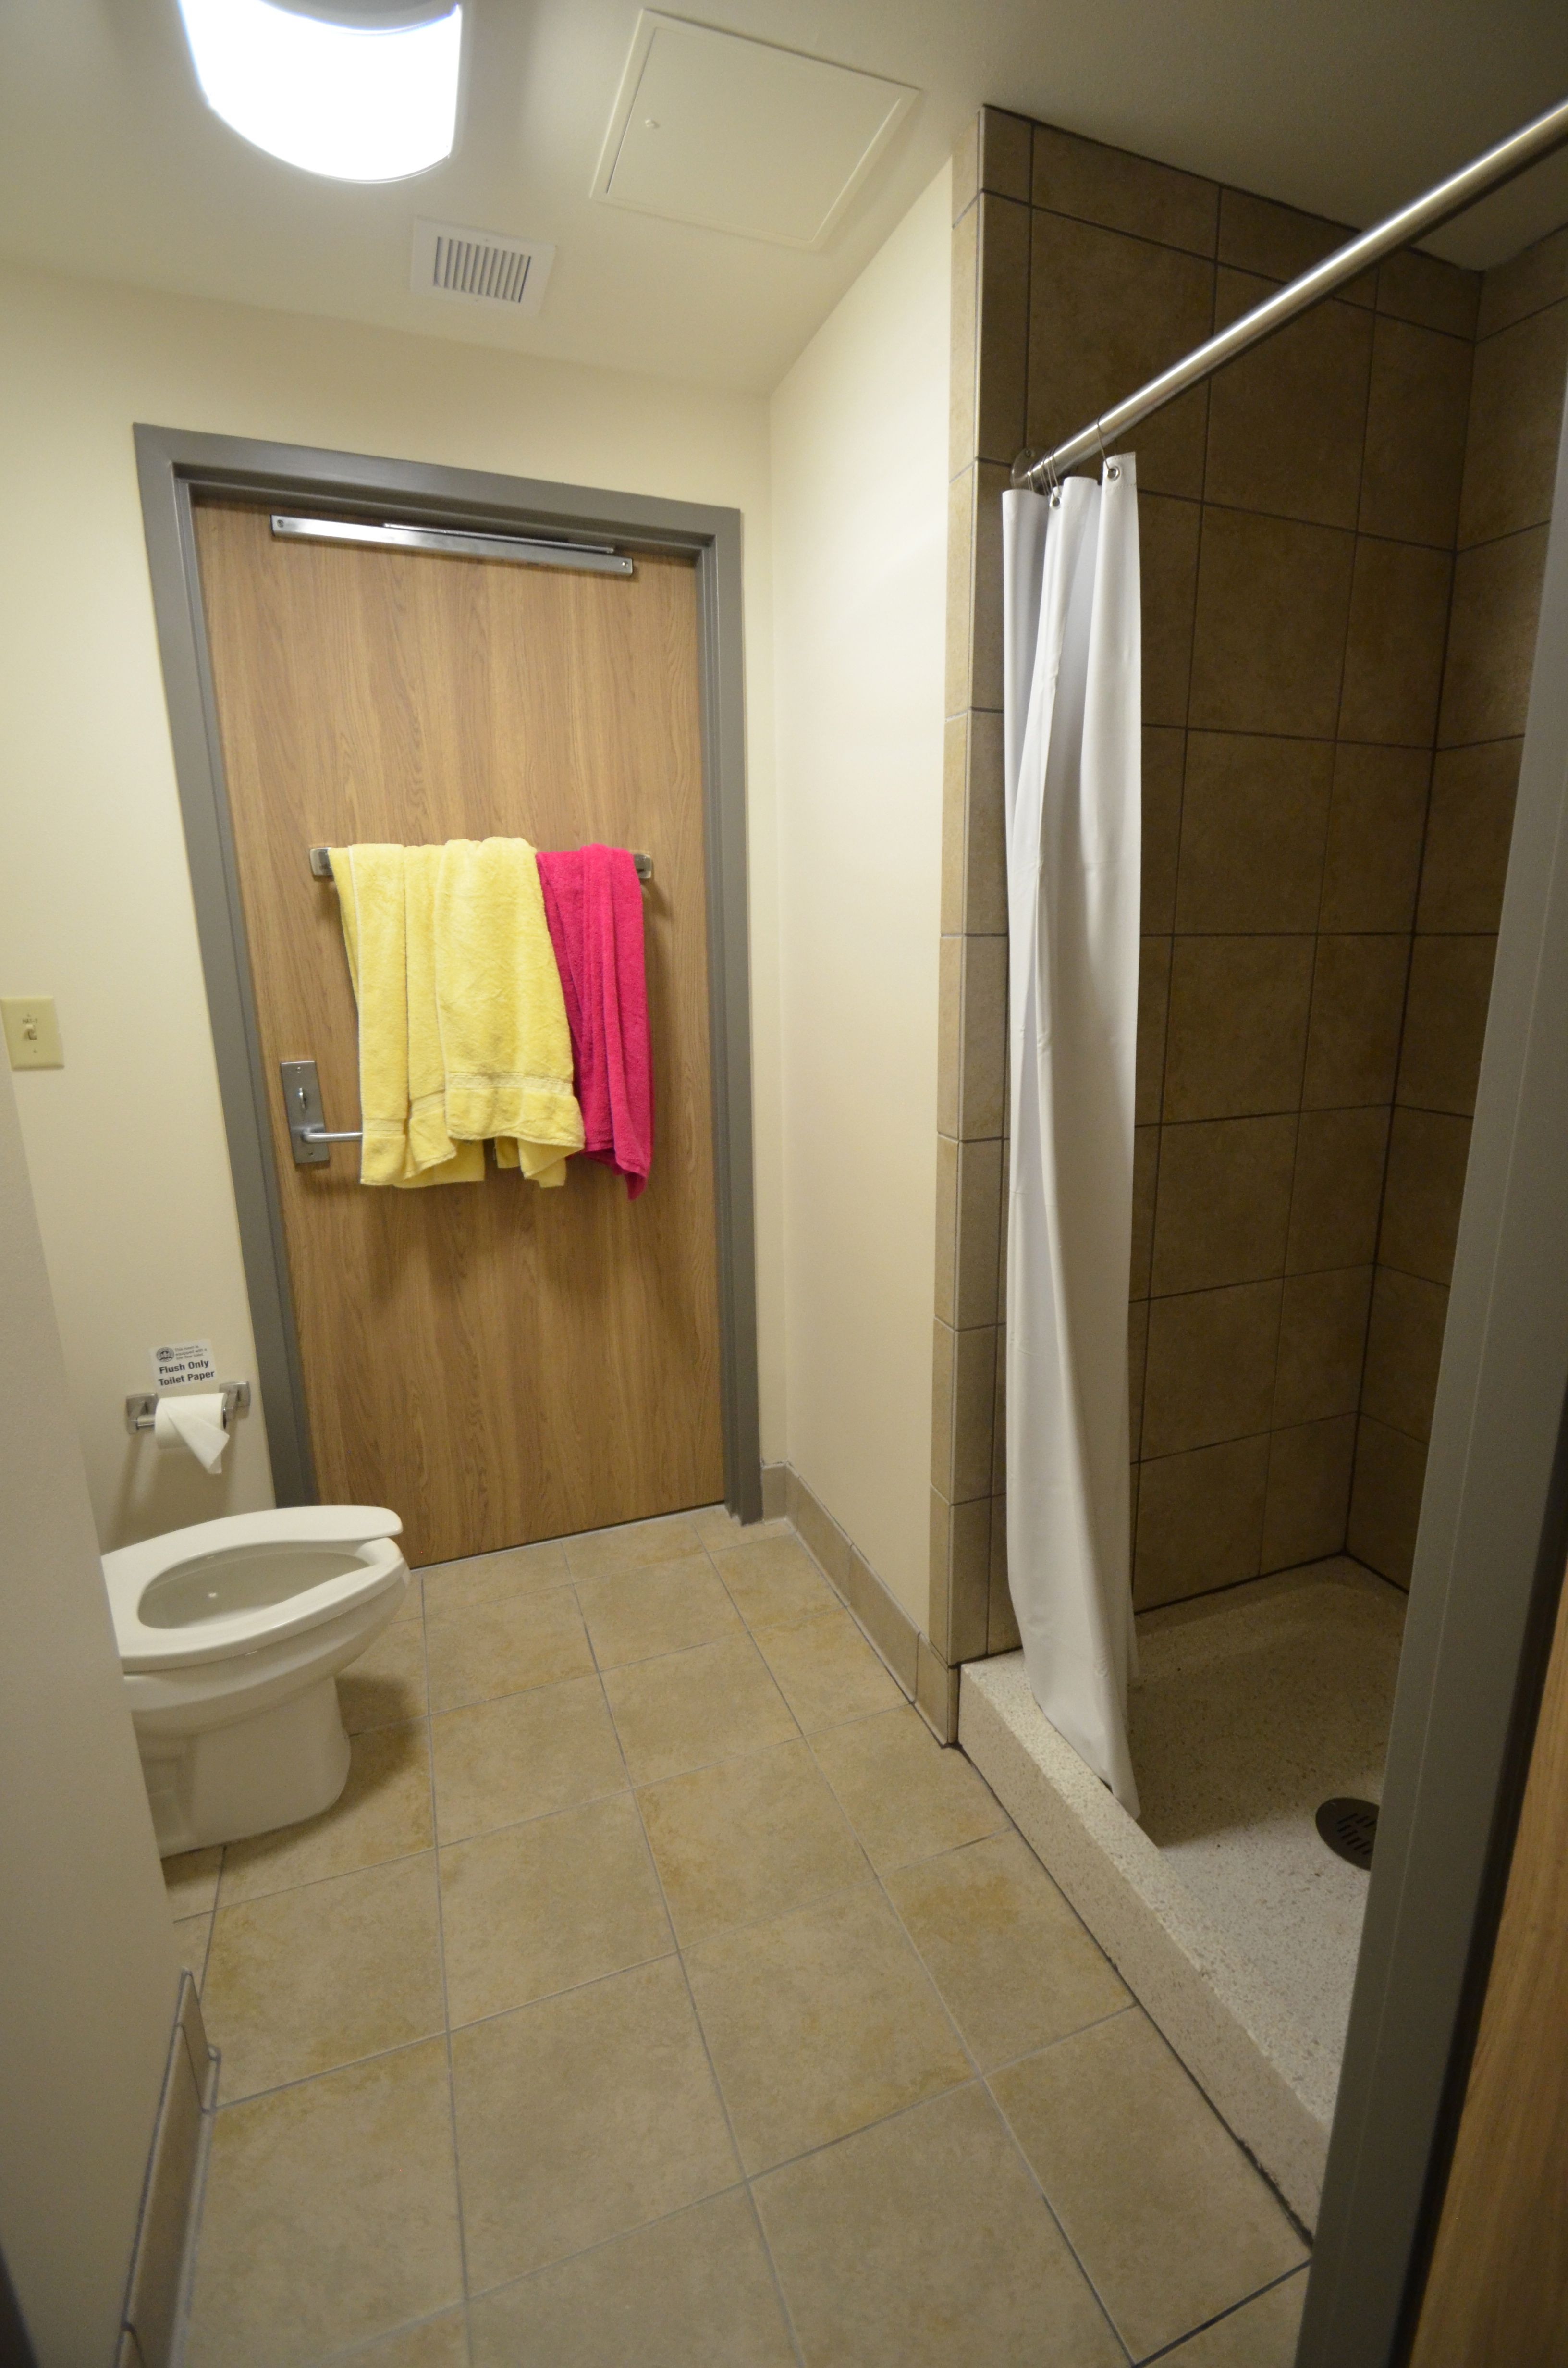 Cypress Hall Has Suite Style Bathrooms. This Means You Will Share A Bathroom  With